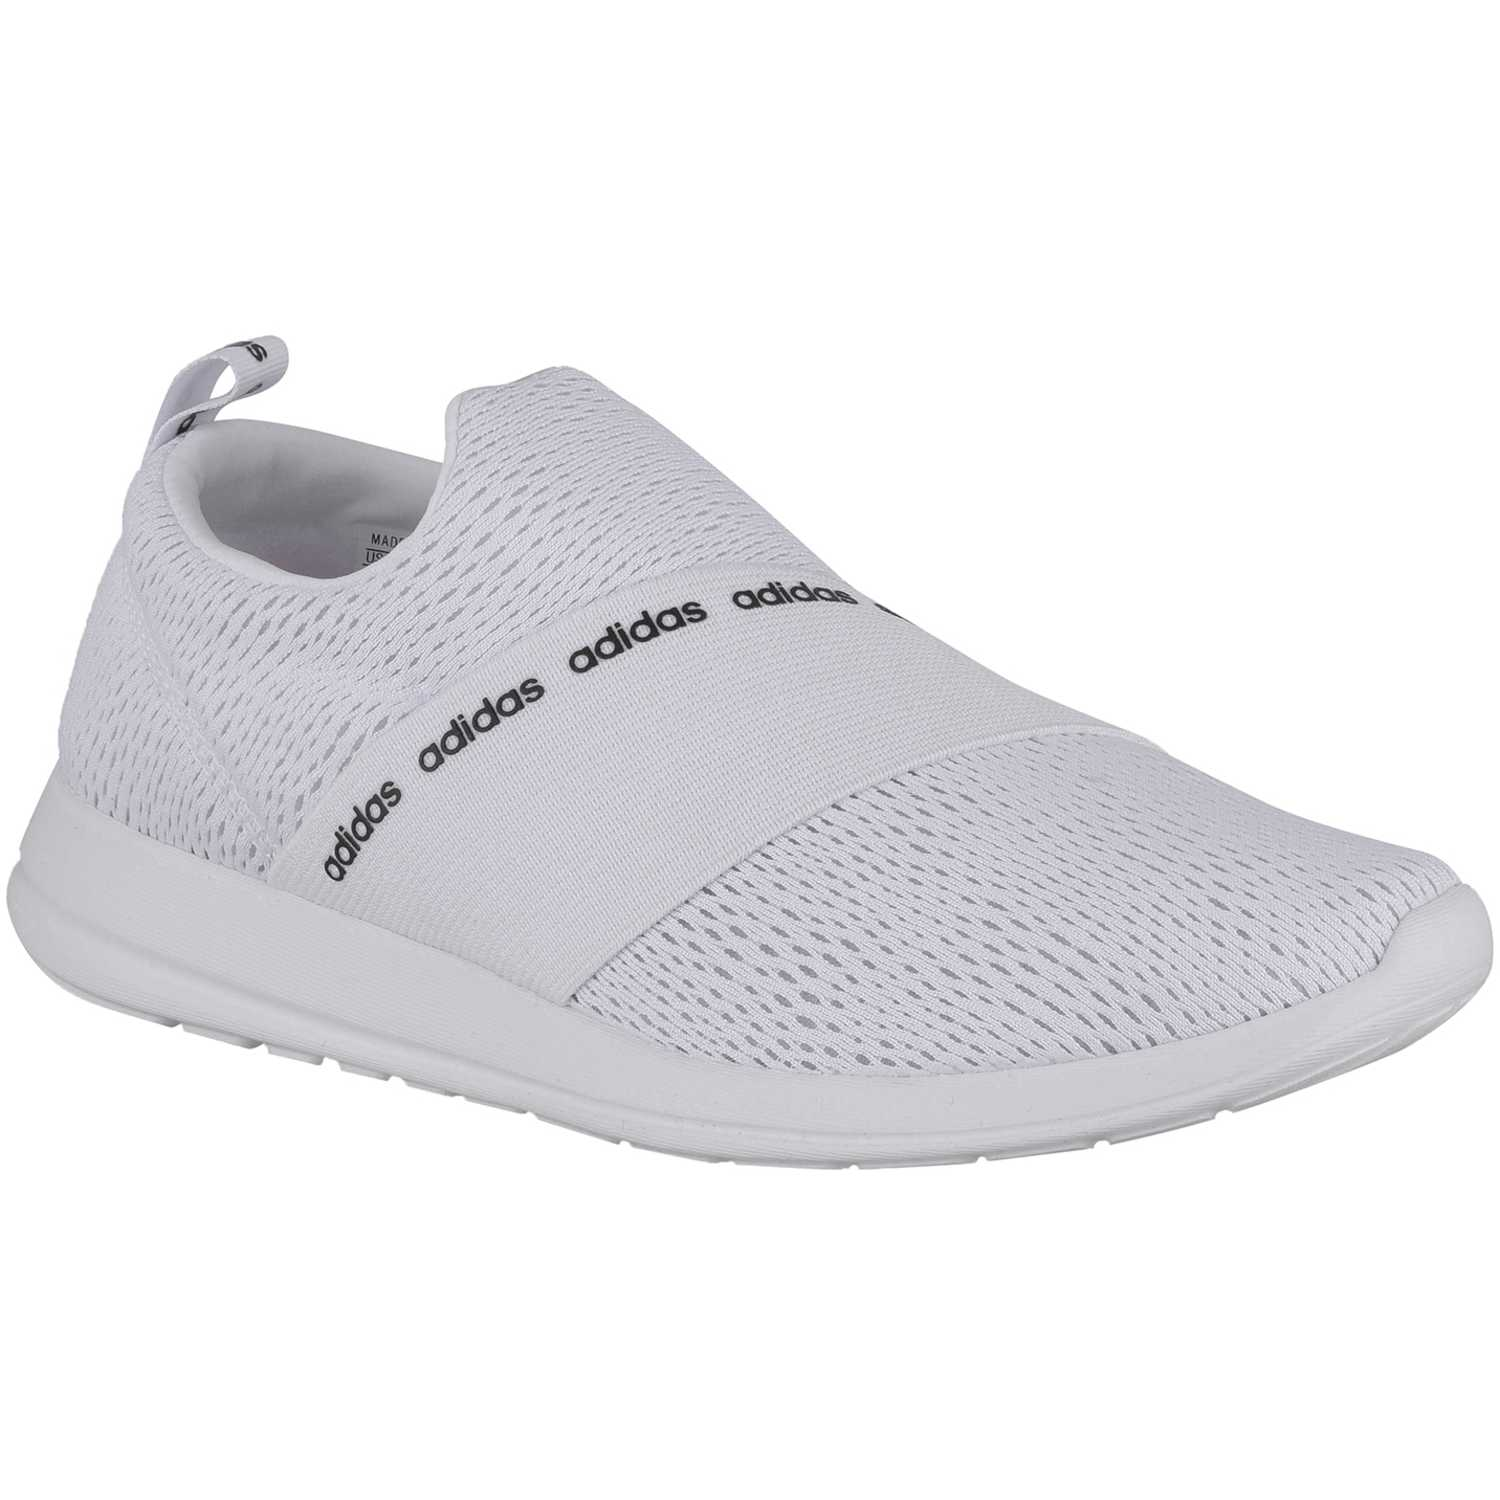 promo code 7cd37 7feaa ... coupon code for zapatilla de mujer adidas neo blanco gris refine adapt  cbe8d b24d2